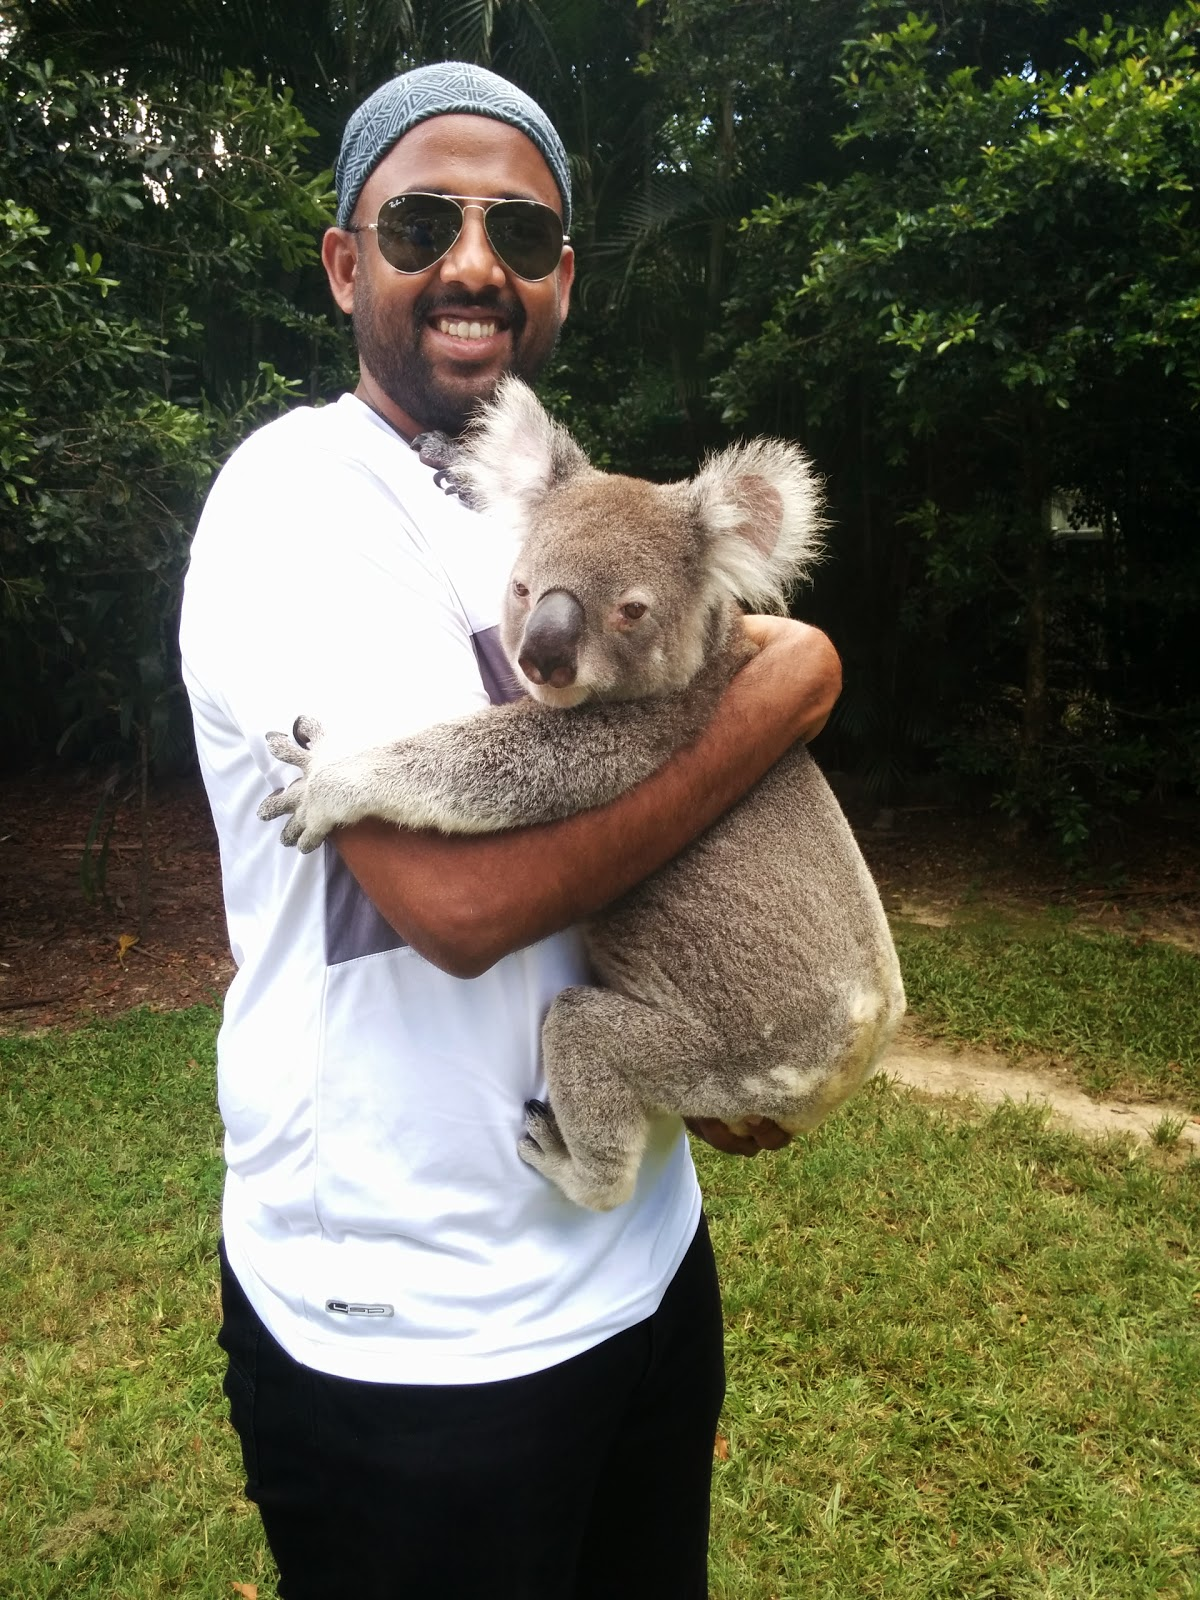 Cuddling a Koala at the Lone Pine Koala Sanctuary